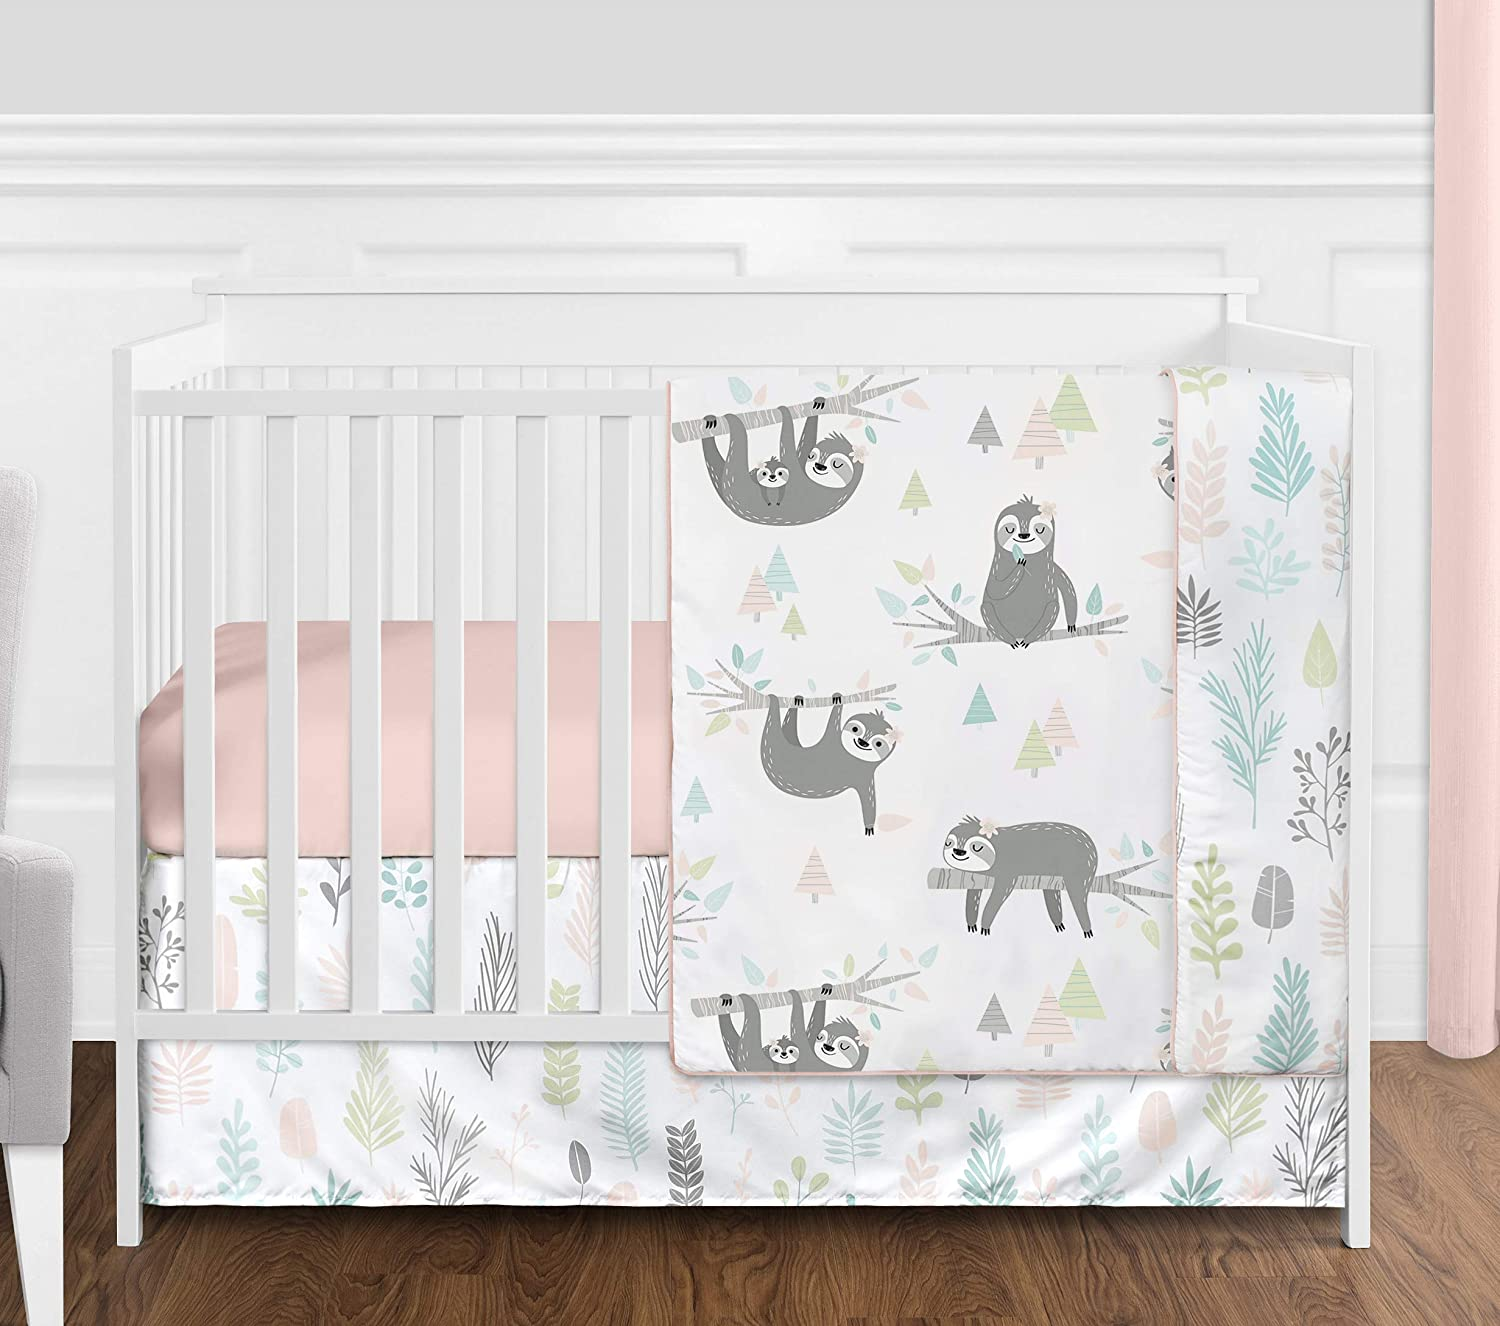 Sweet Jojo Designs Pink and Grey Jungle Sloth Leaf Baby Girl Nursery Crib Bedding Set Without Bumper - 4 Pieces - Blush, Turquoise, Gray and Green Tropical Botanical Rainforest